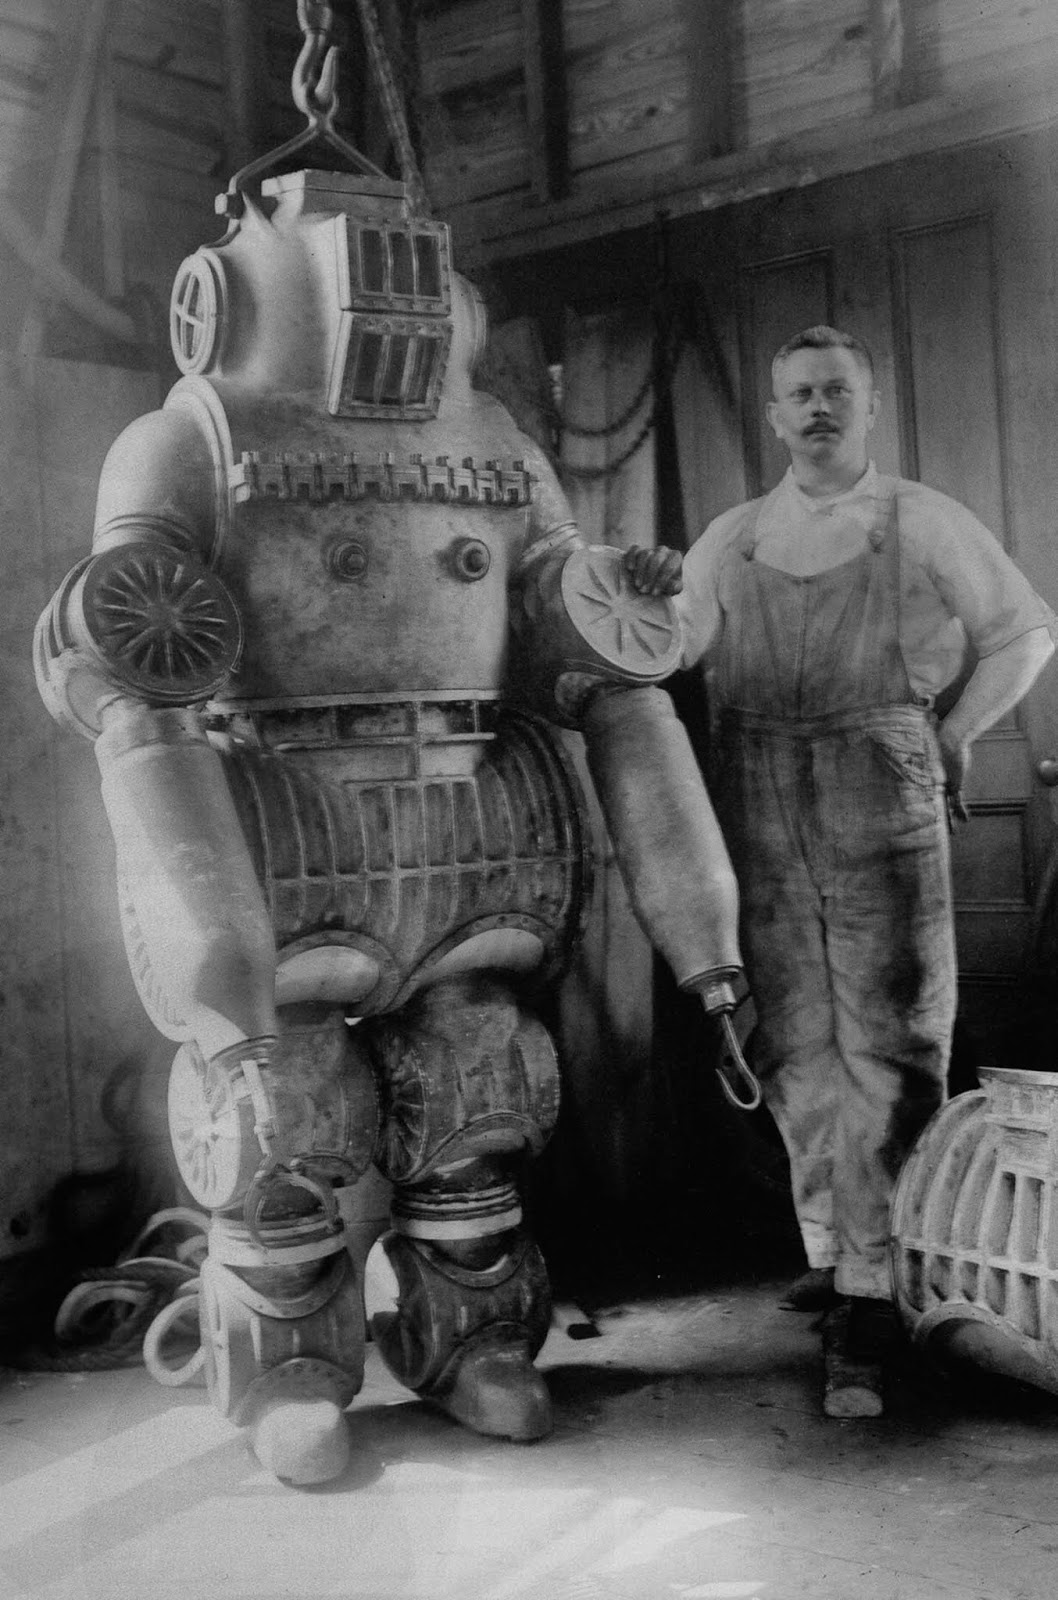 In 1914, Chester MacDuffee constructed the first suit with ball bearings, as the medium to provide movement to a joint. The suit was tested in New York in 214 feet of water. 1914.